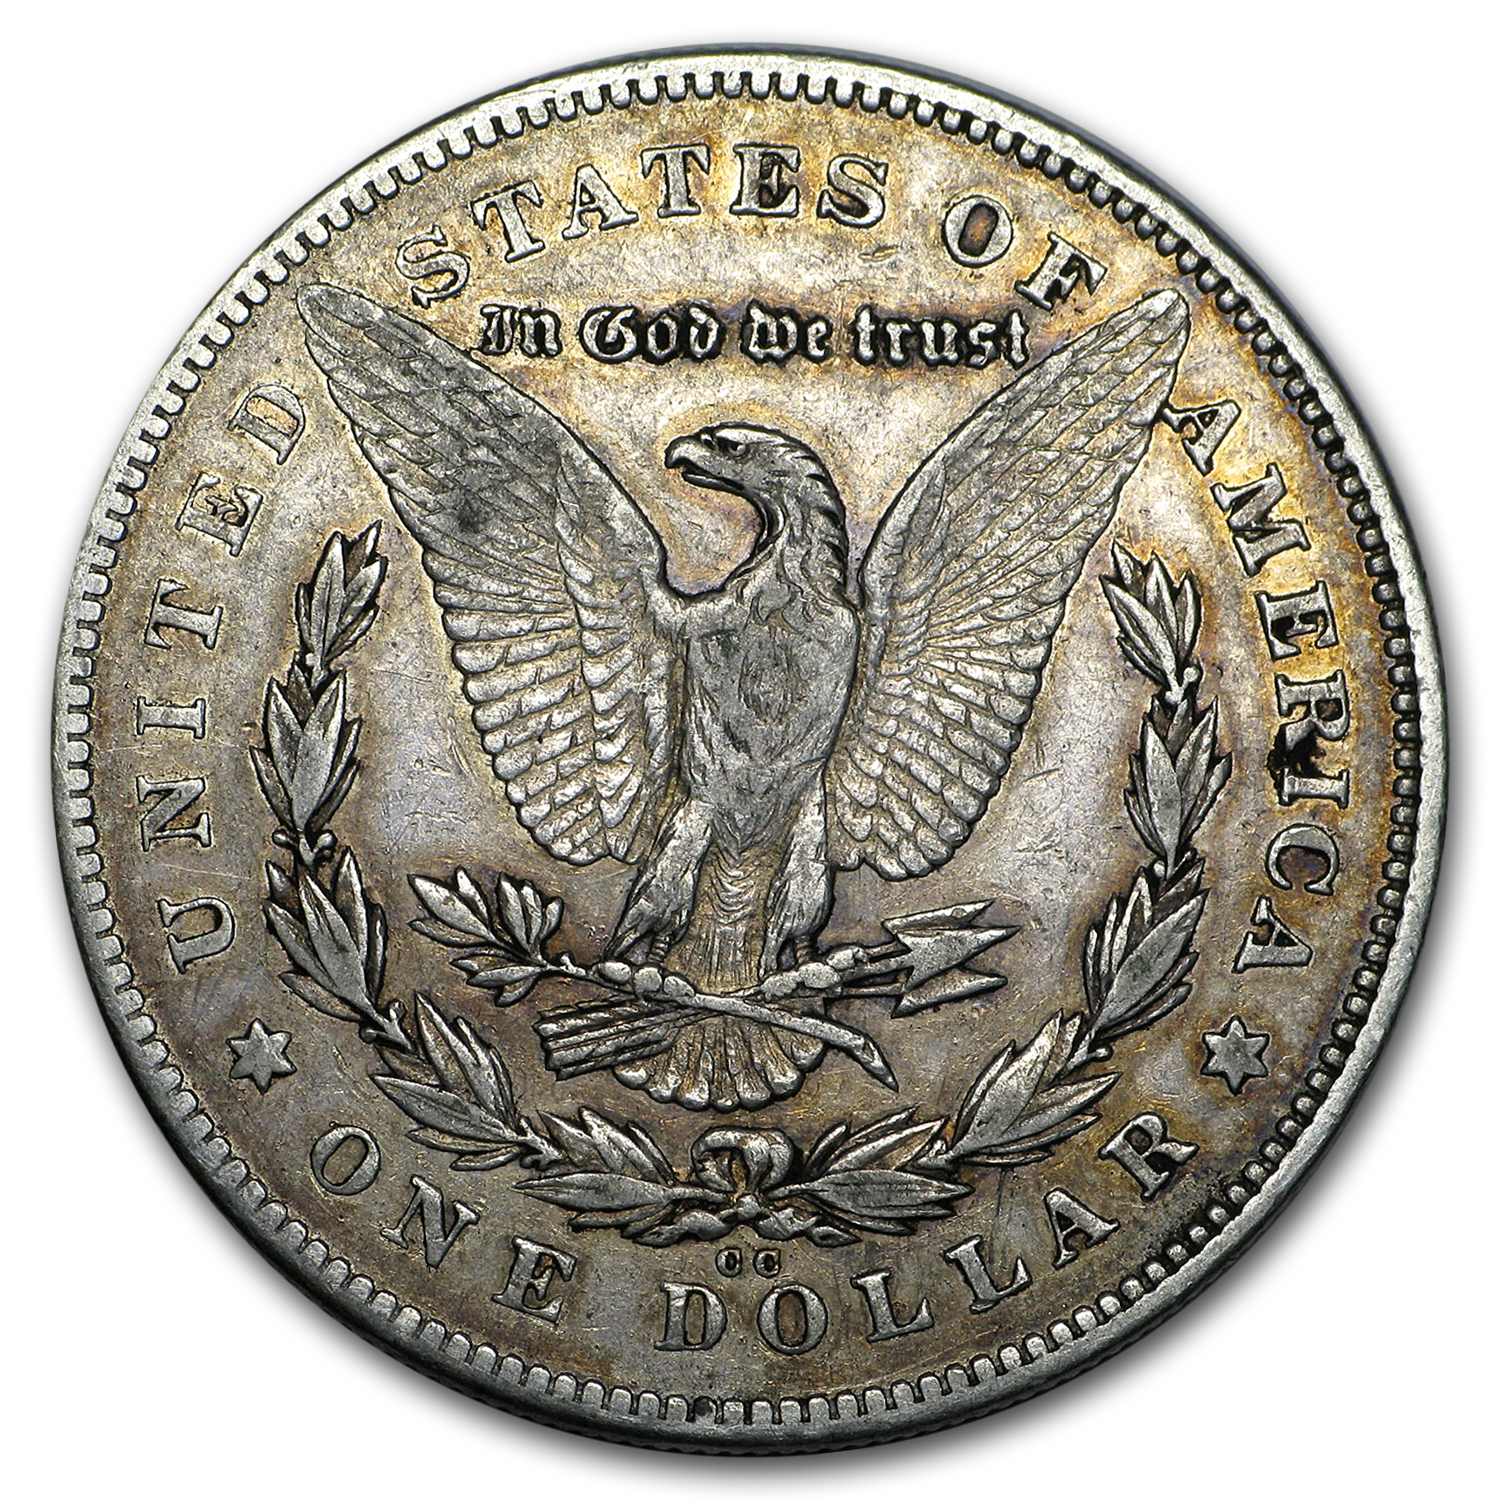 1878-CC Morgan Dollar - Very Fine